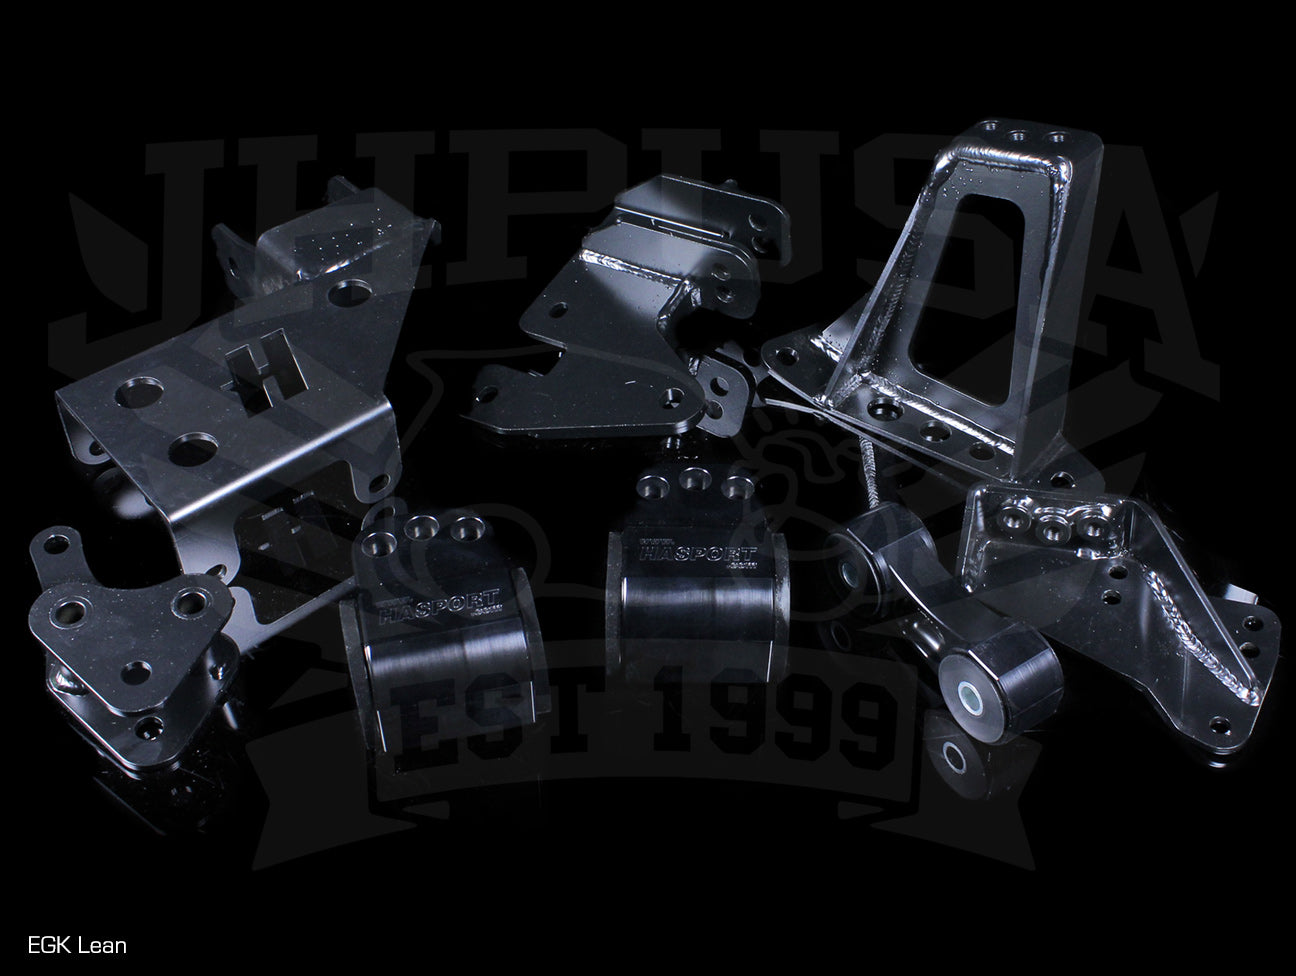 Hasport Billet Black K-series Lean Engine Mount Kit - 92-00 Civic / 94-01 Integra